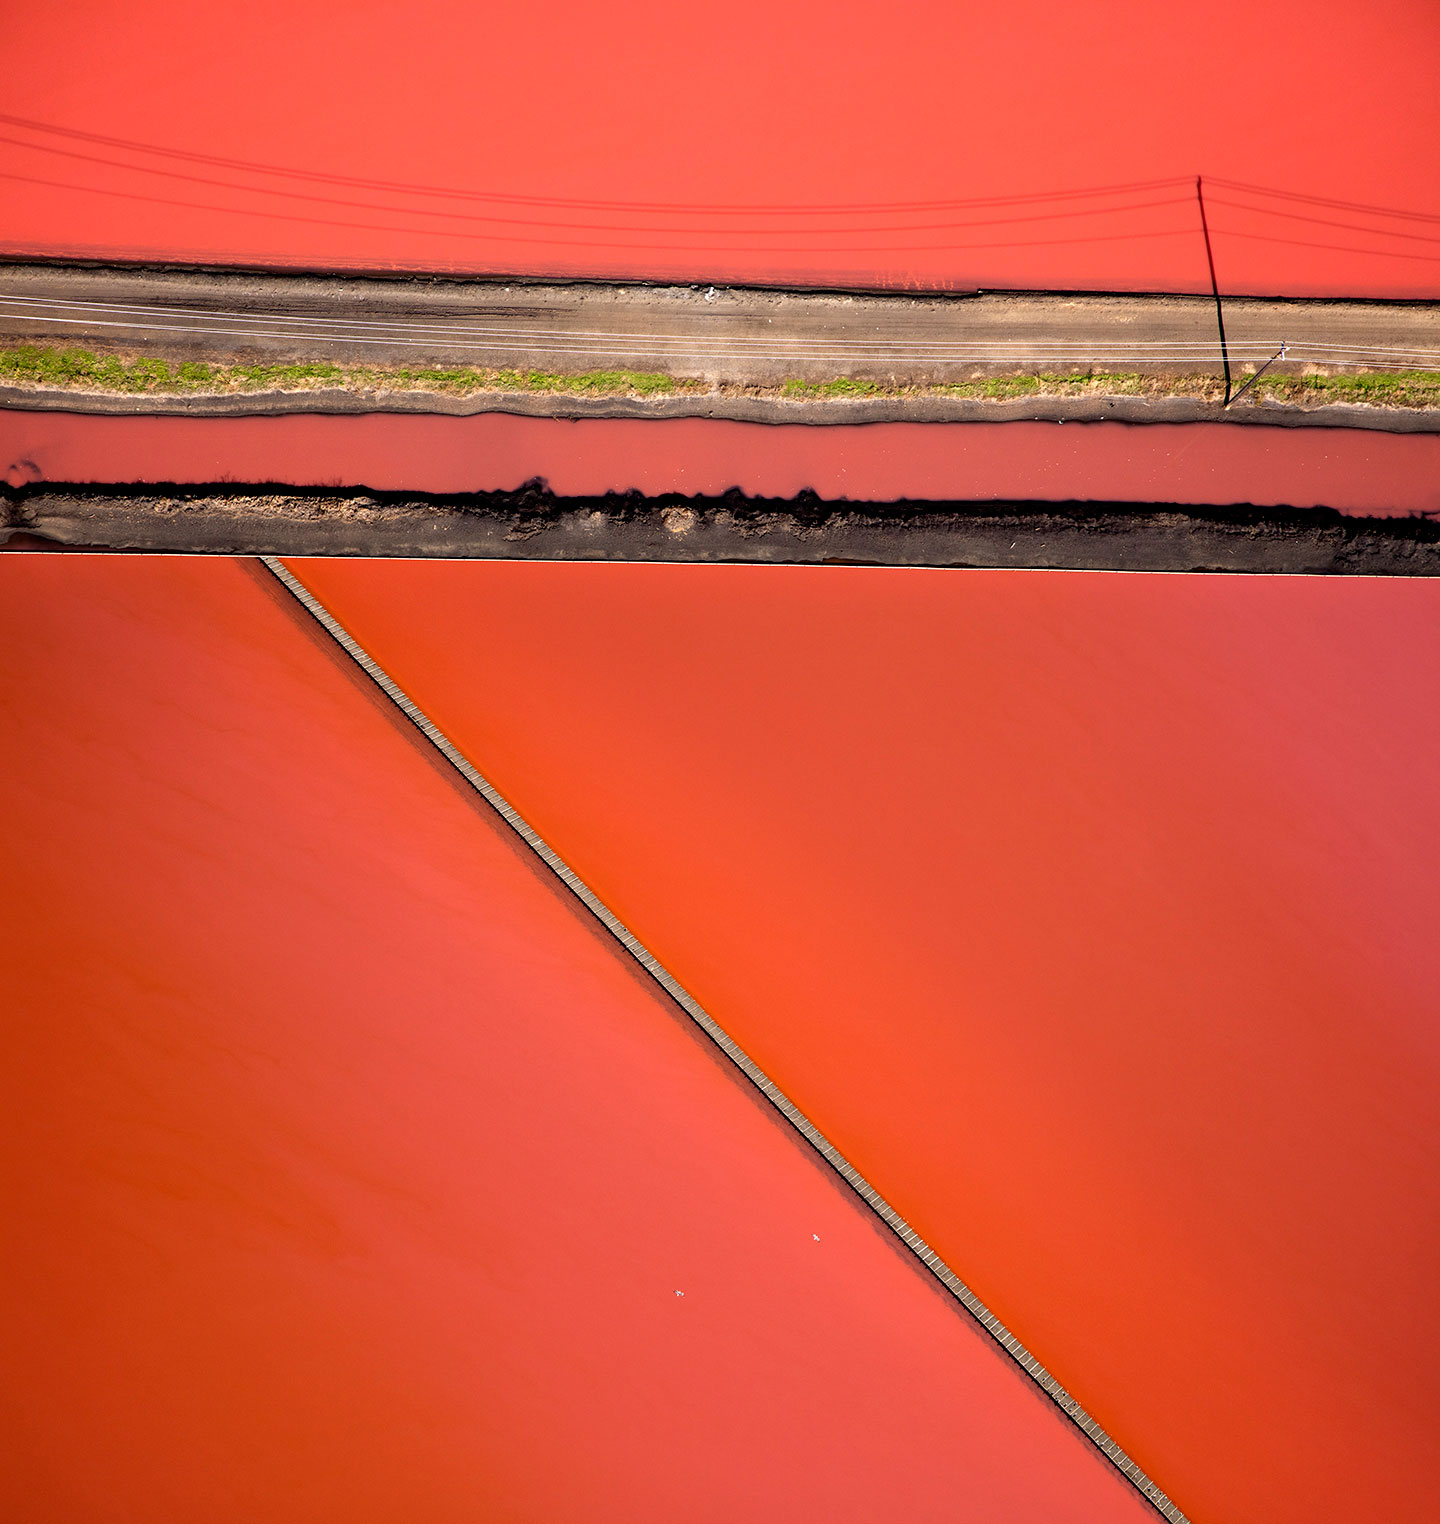 San Francisco Salt Ponds by joSon